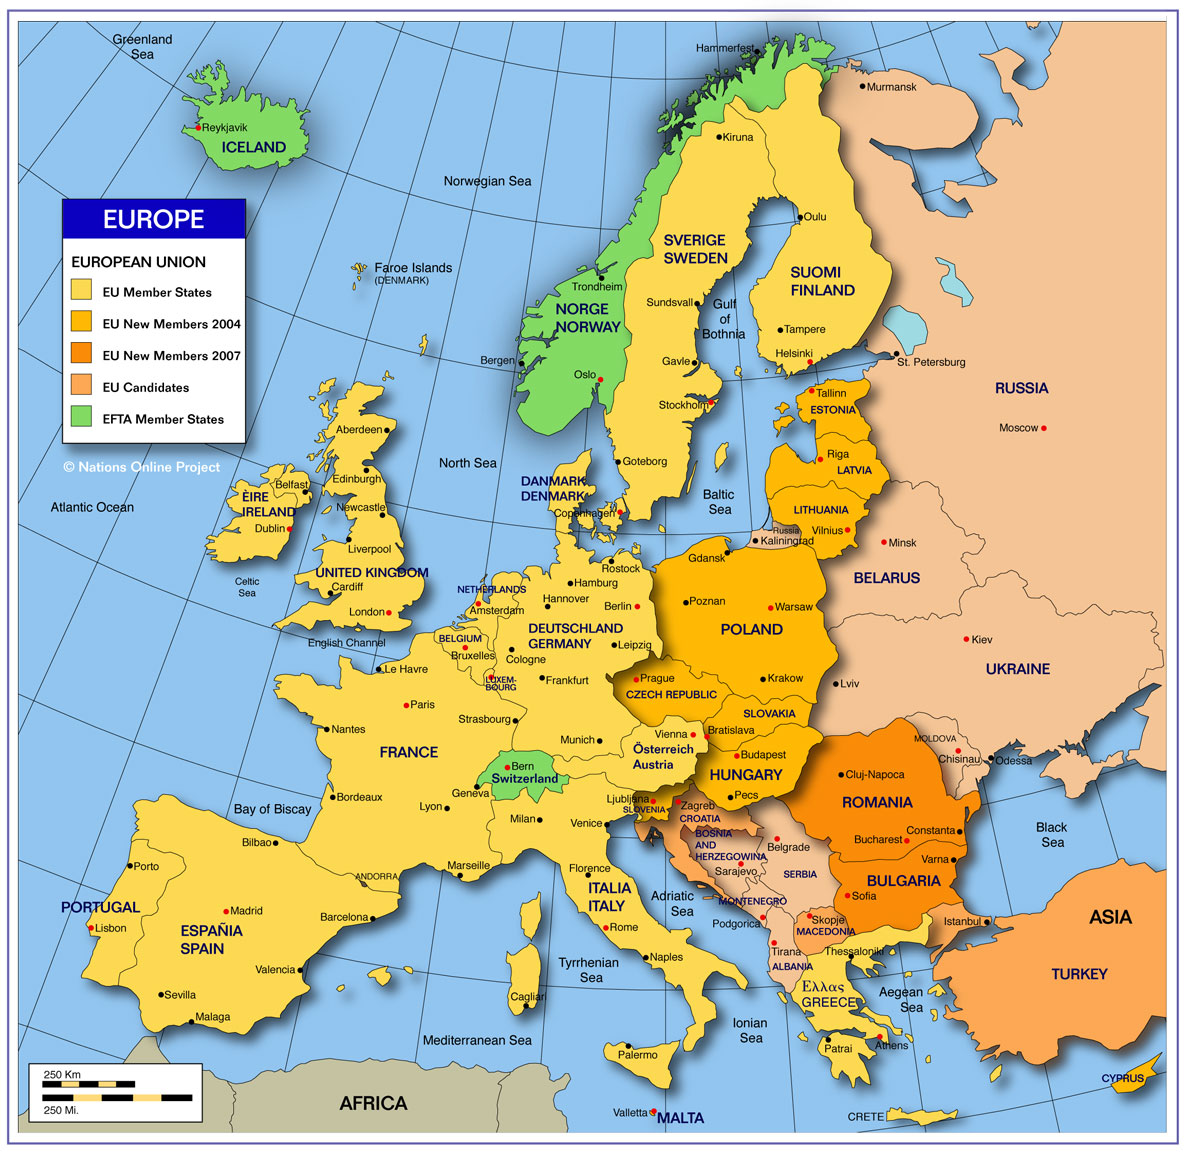 eurpean map with Map Europe Photo on U11 Cold War Maps besides Map Europe Photo besides 1940 Europe Map 170883 00 14 05 in addition Outline Map Of Europe 1939 together with 38 Maps That Explain Europe.